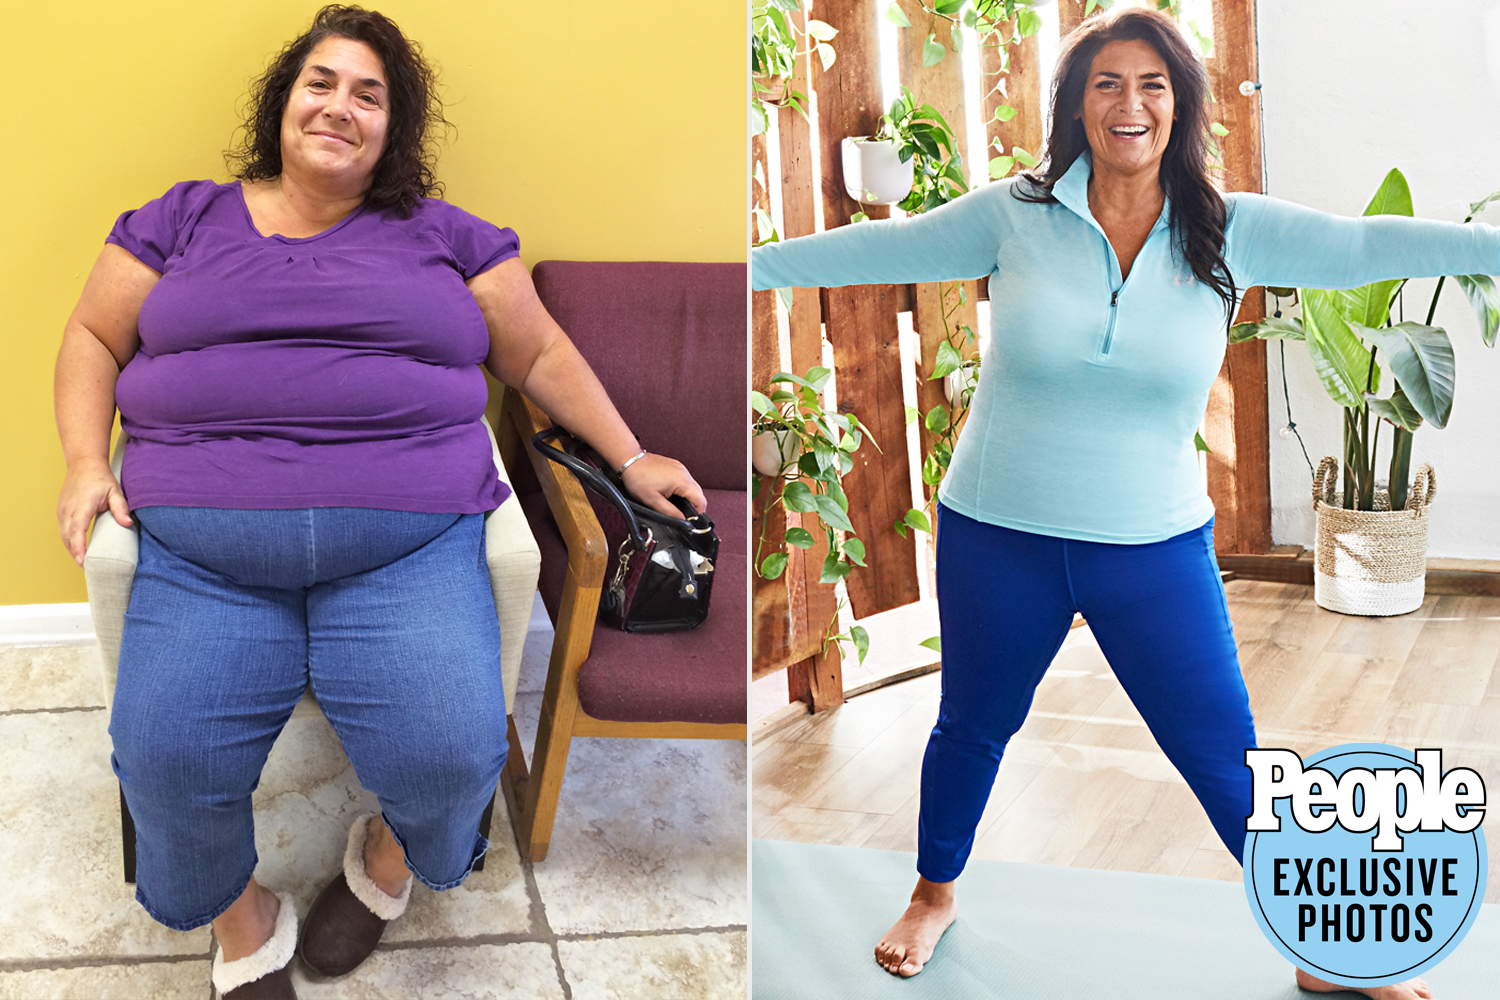 Linda Migliaccio - Before and After